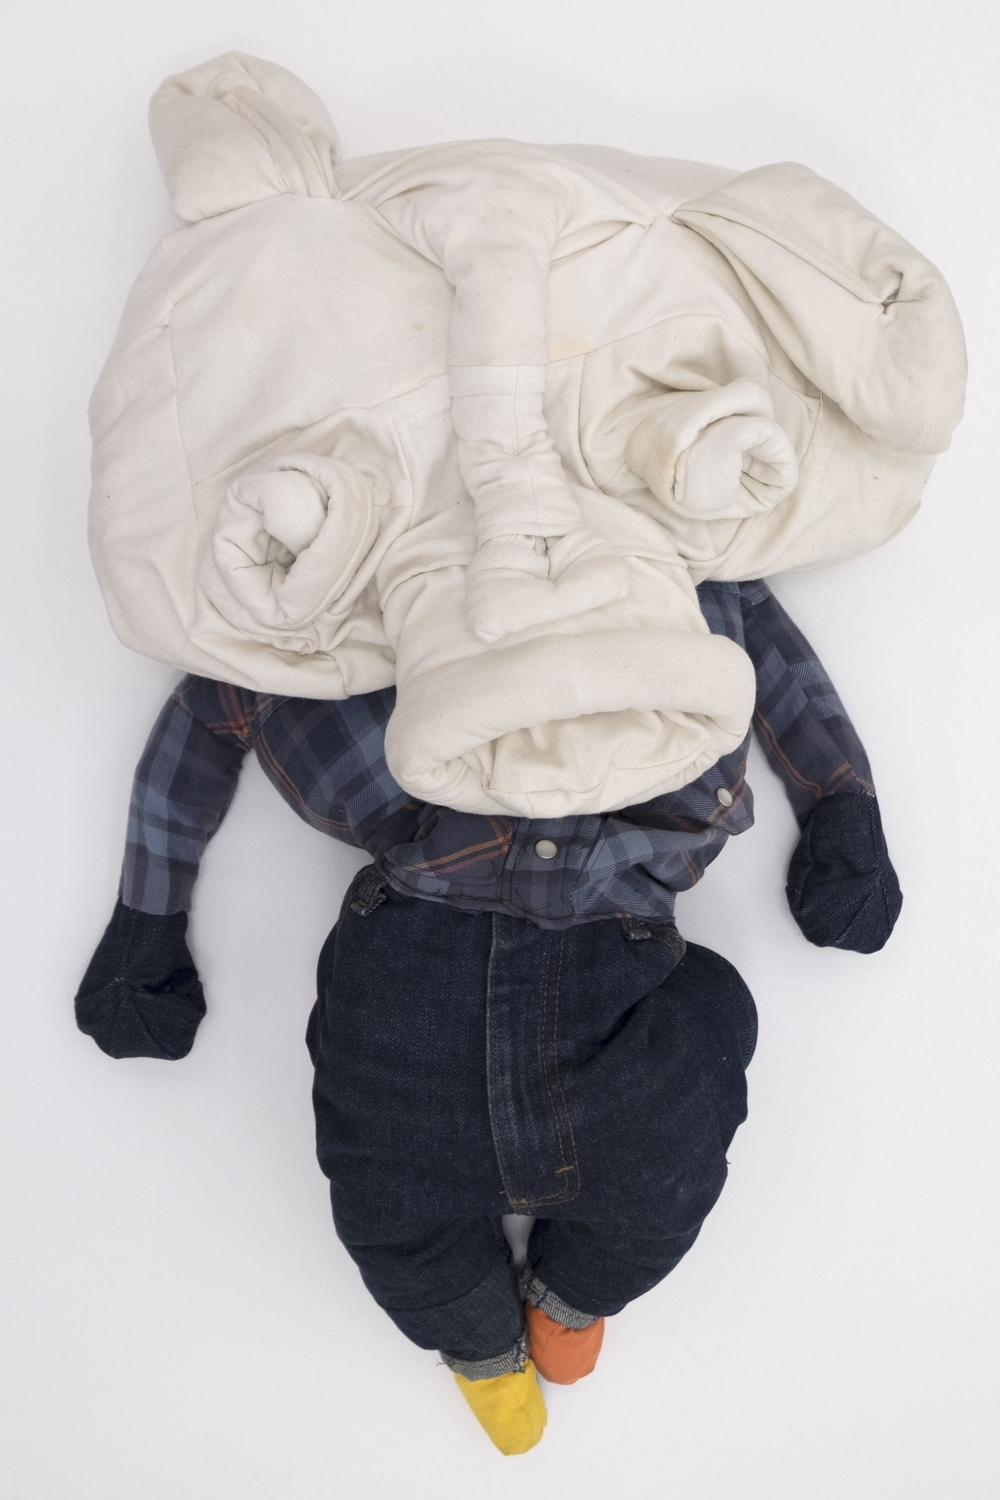 Peter Opheim  David,  2015 previously worn clothing from a single individual 39h x 19w x 10d in.